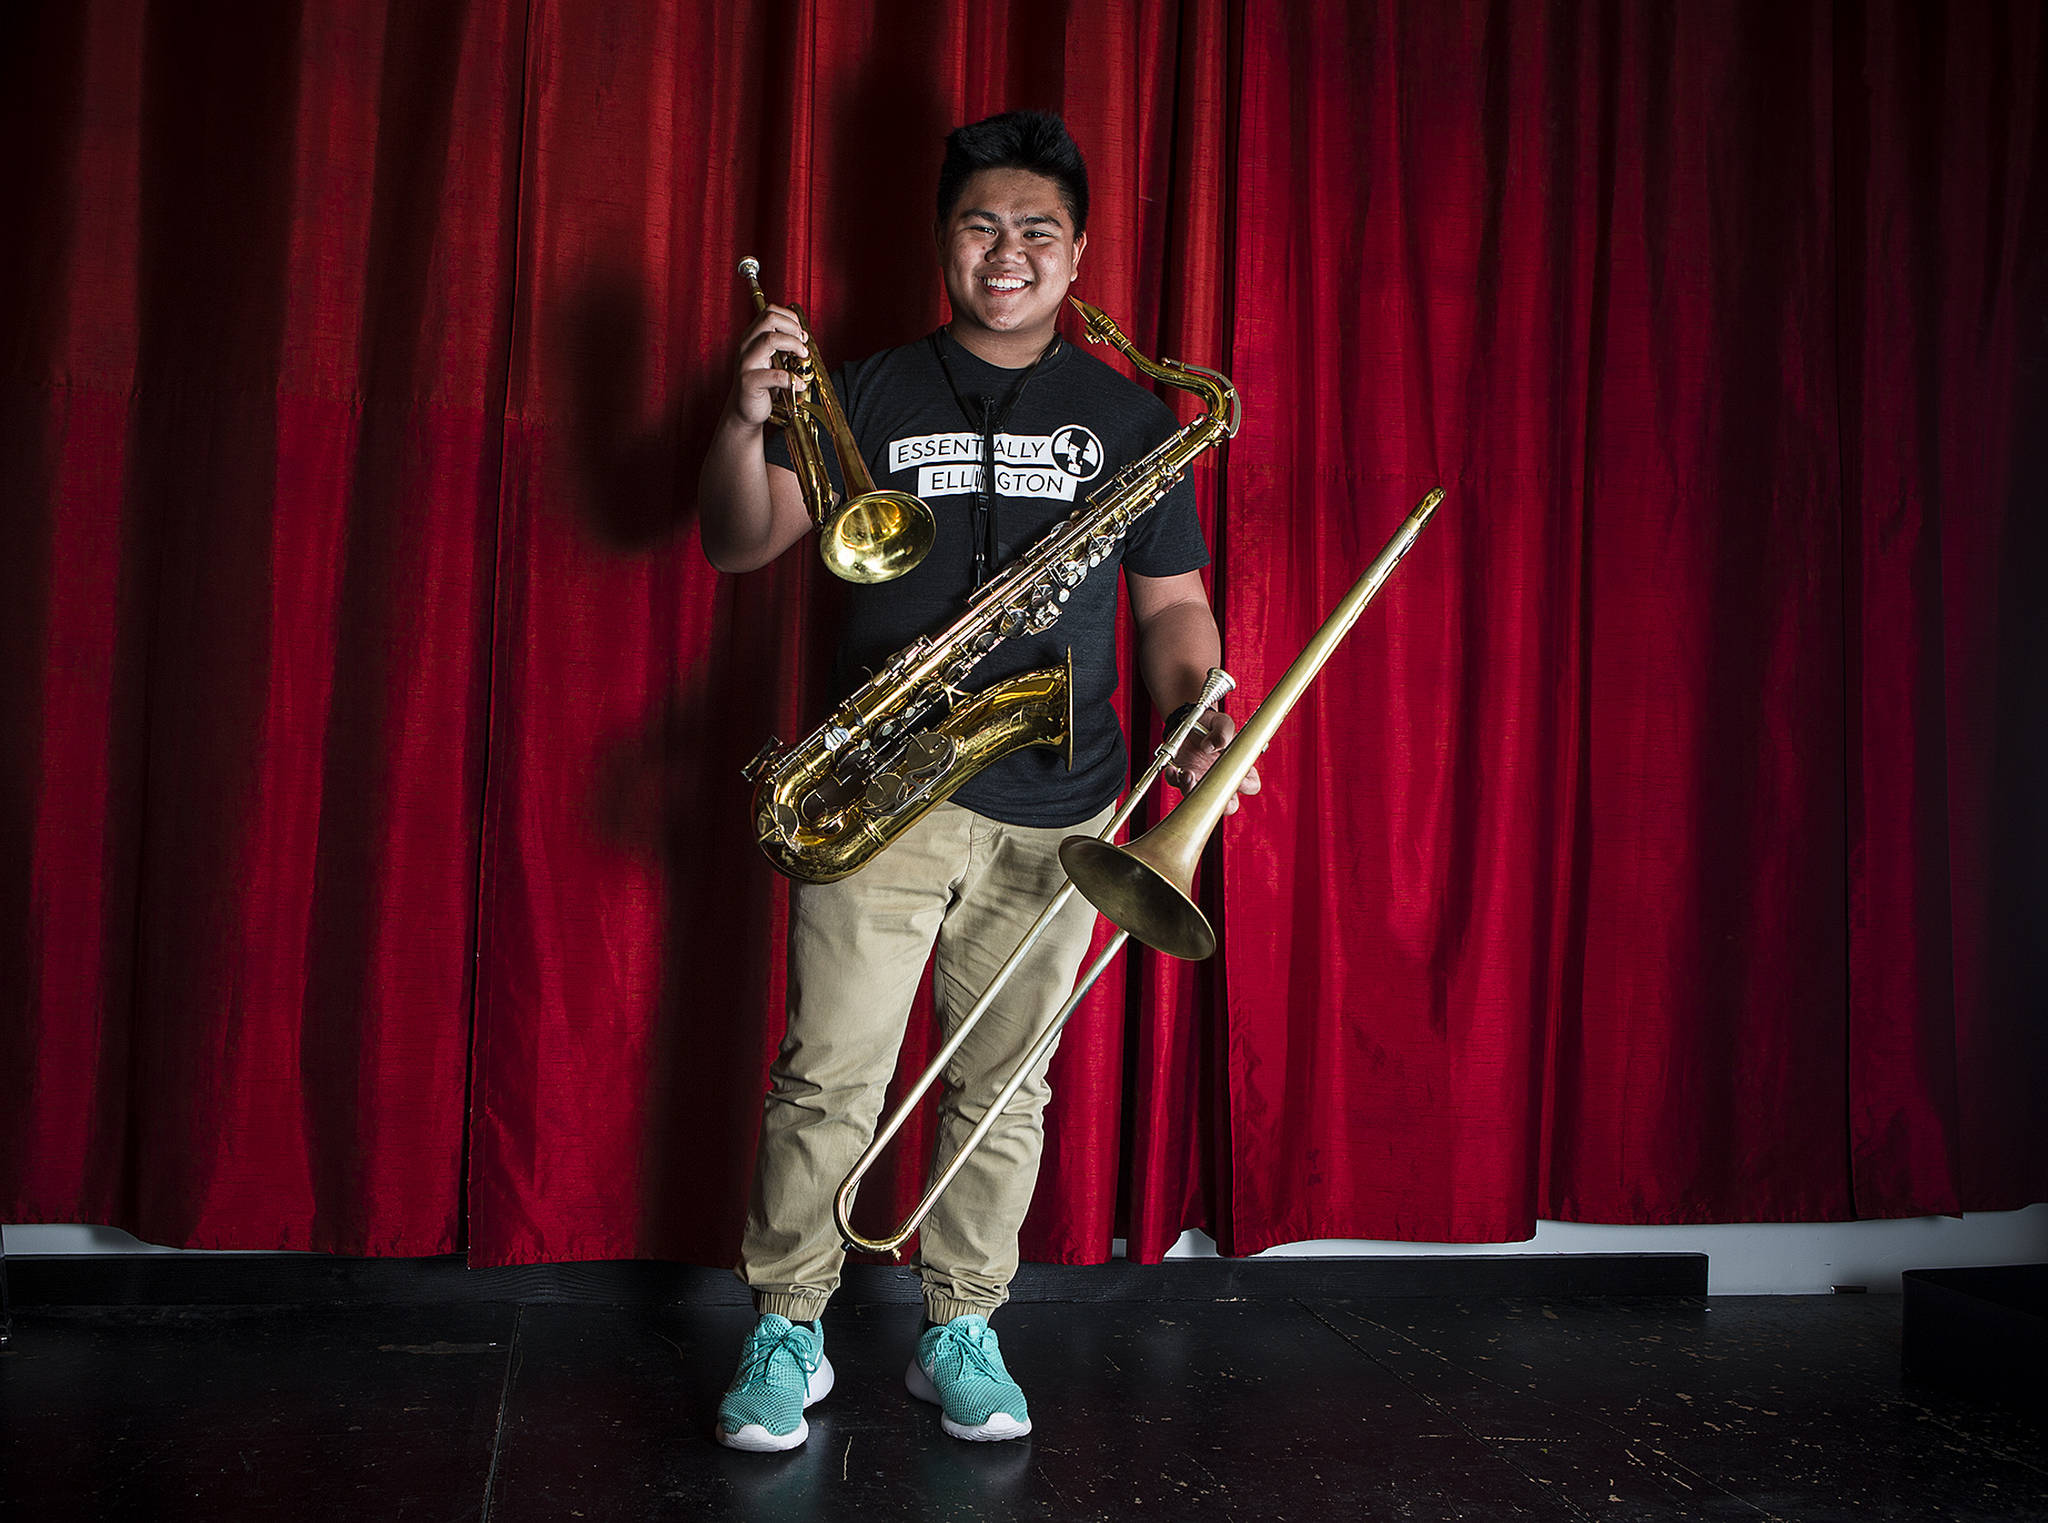 Mountlake Terrace High School student Andrew Sumabat plays the trombone, saxophone and trumpet and is headed to the University of Washington this fall. (Ian Terry / The Herald)